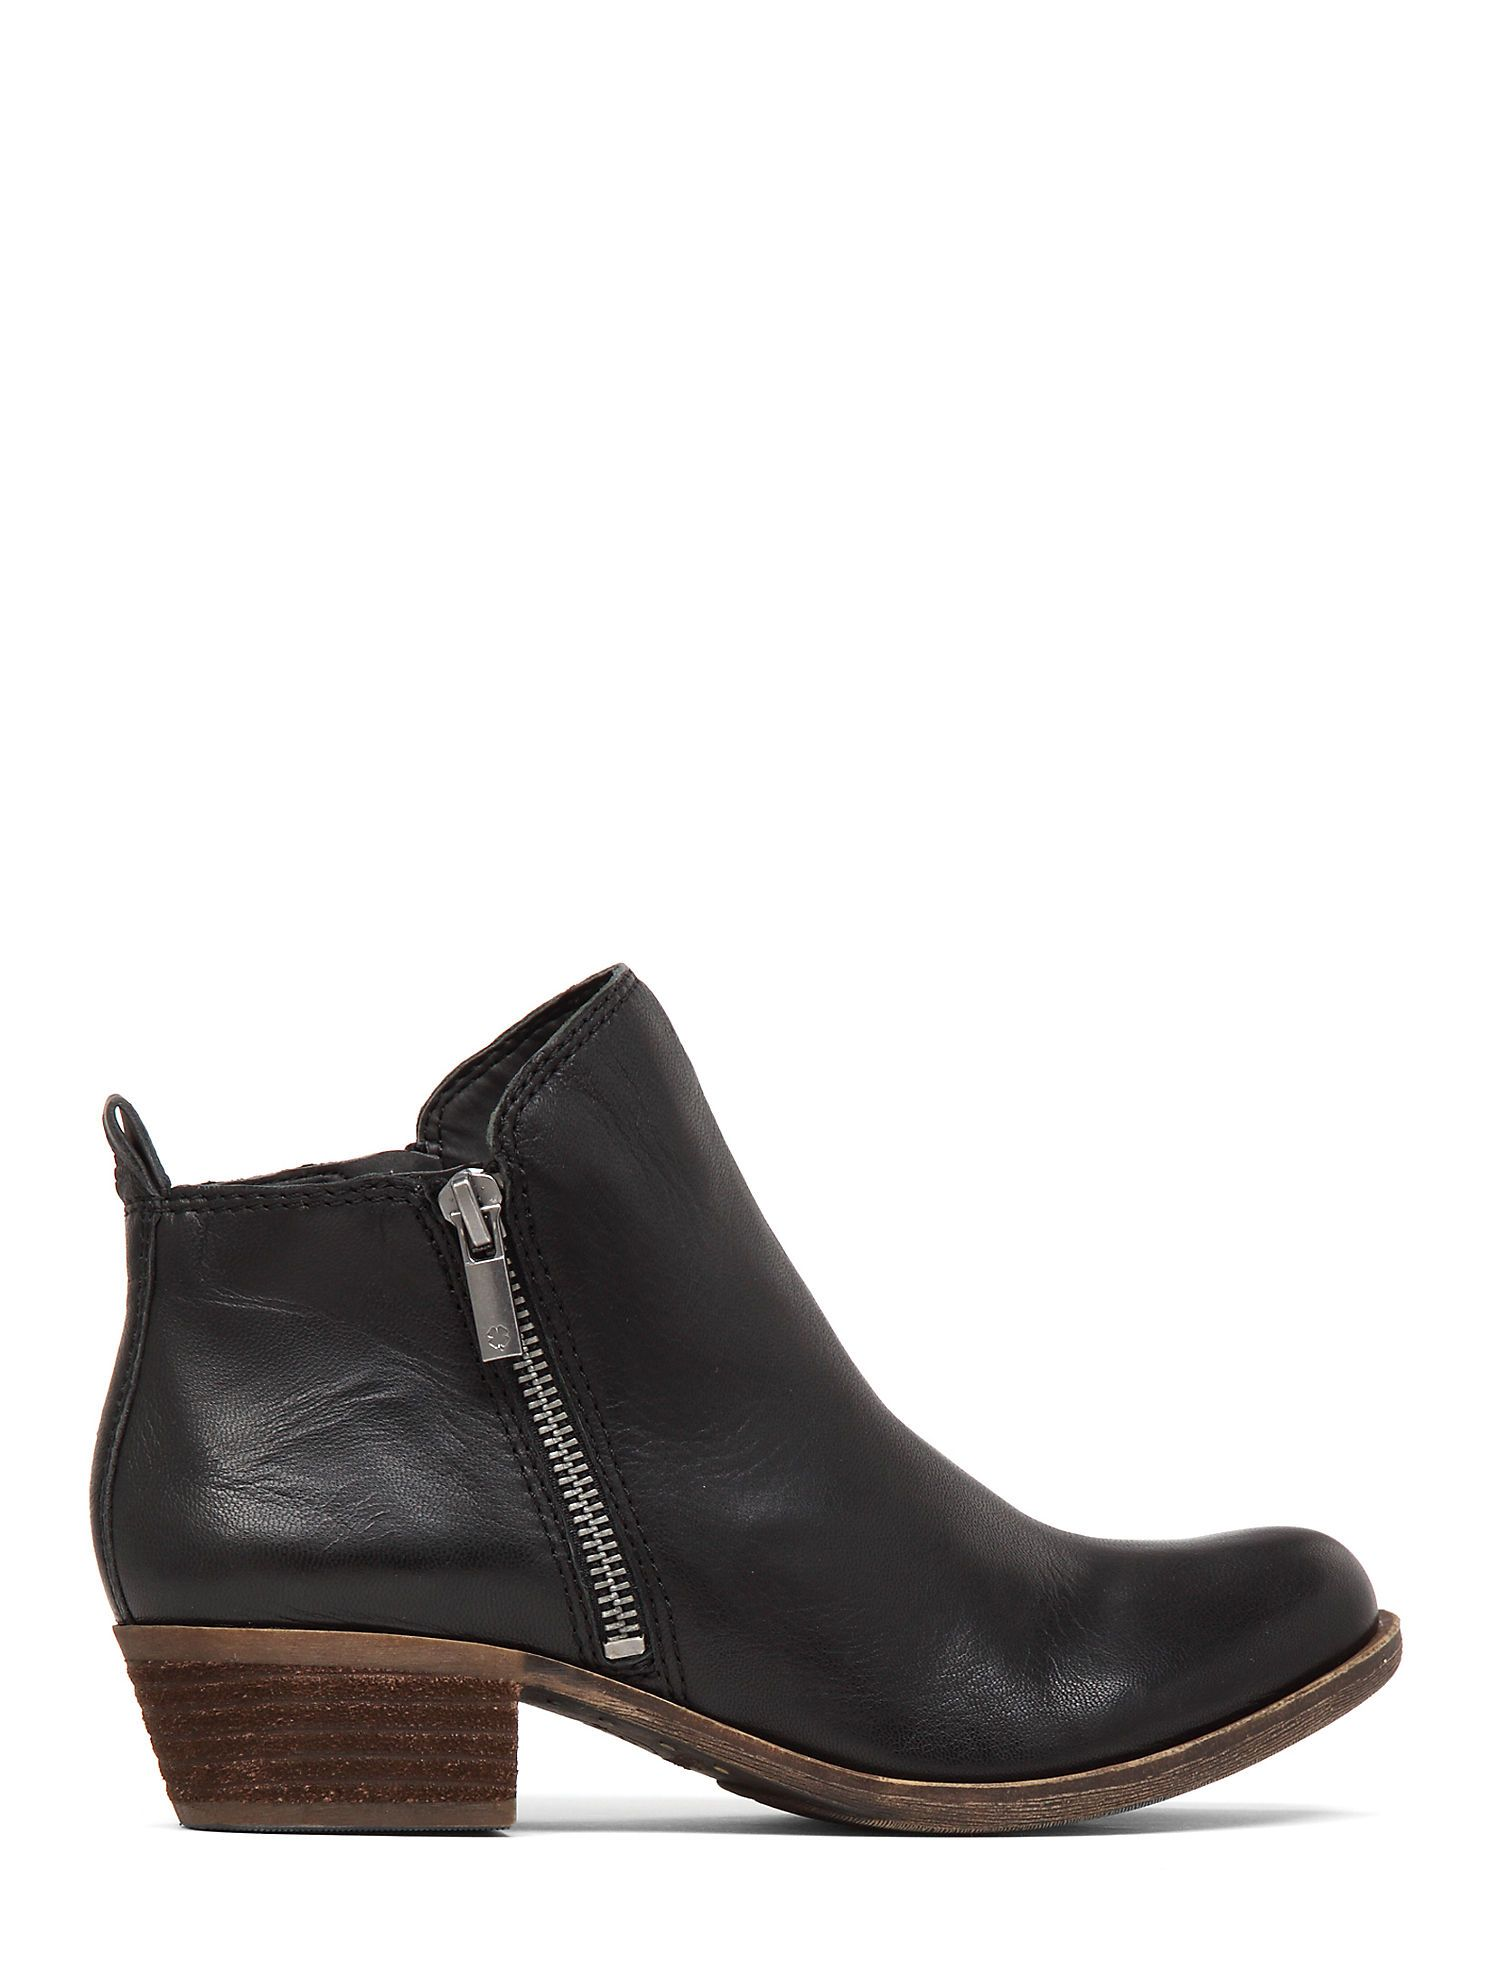 7b13b04d0f7d Find basel flat bootie and more at Lucky Brand. Shop now and receive free  shipping on orders over  50.